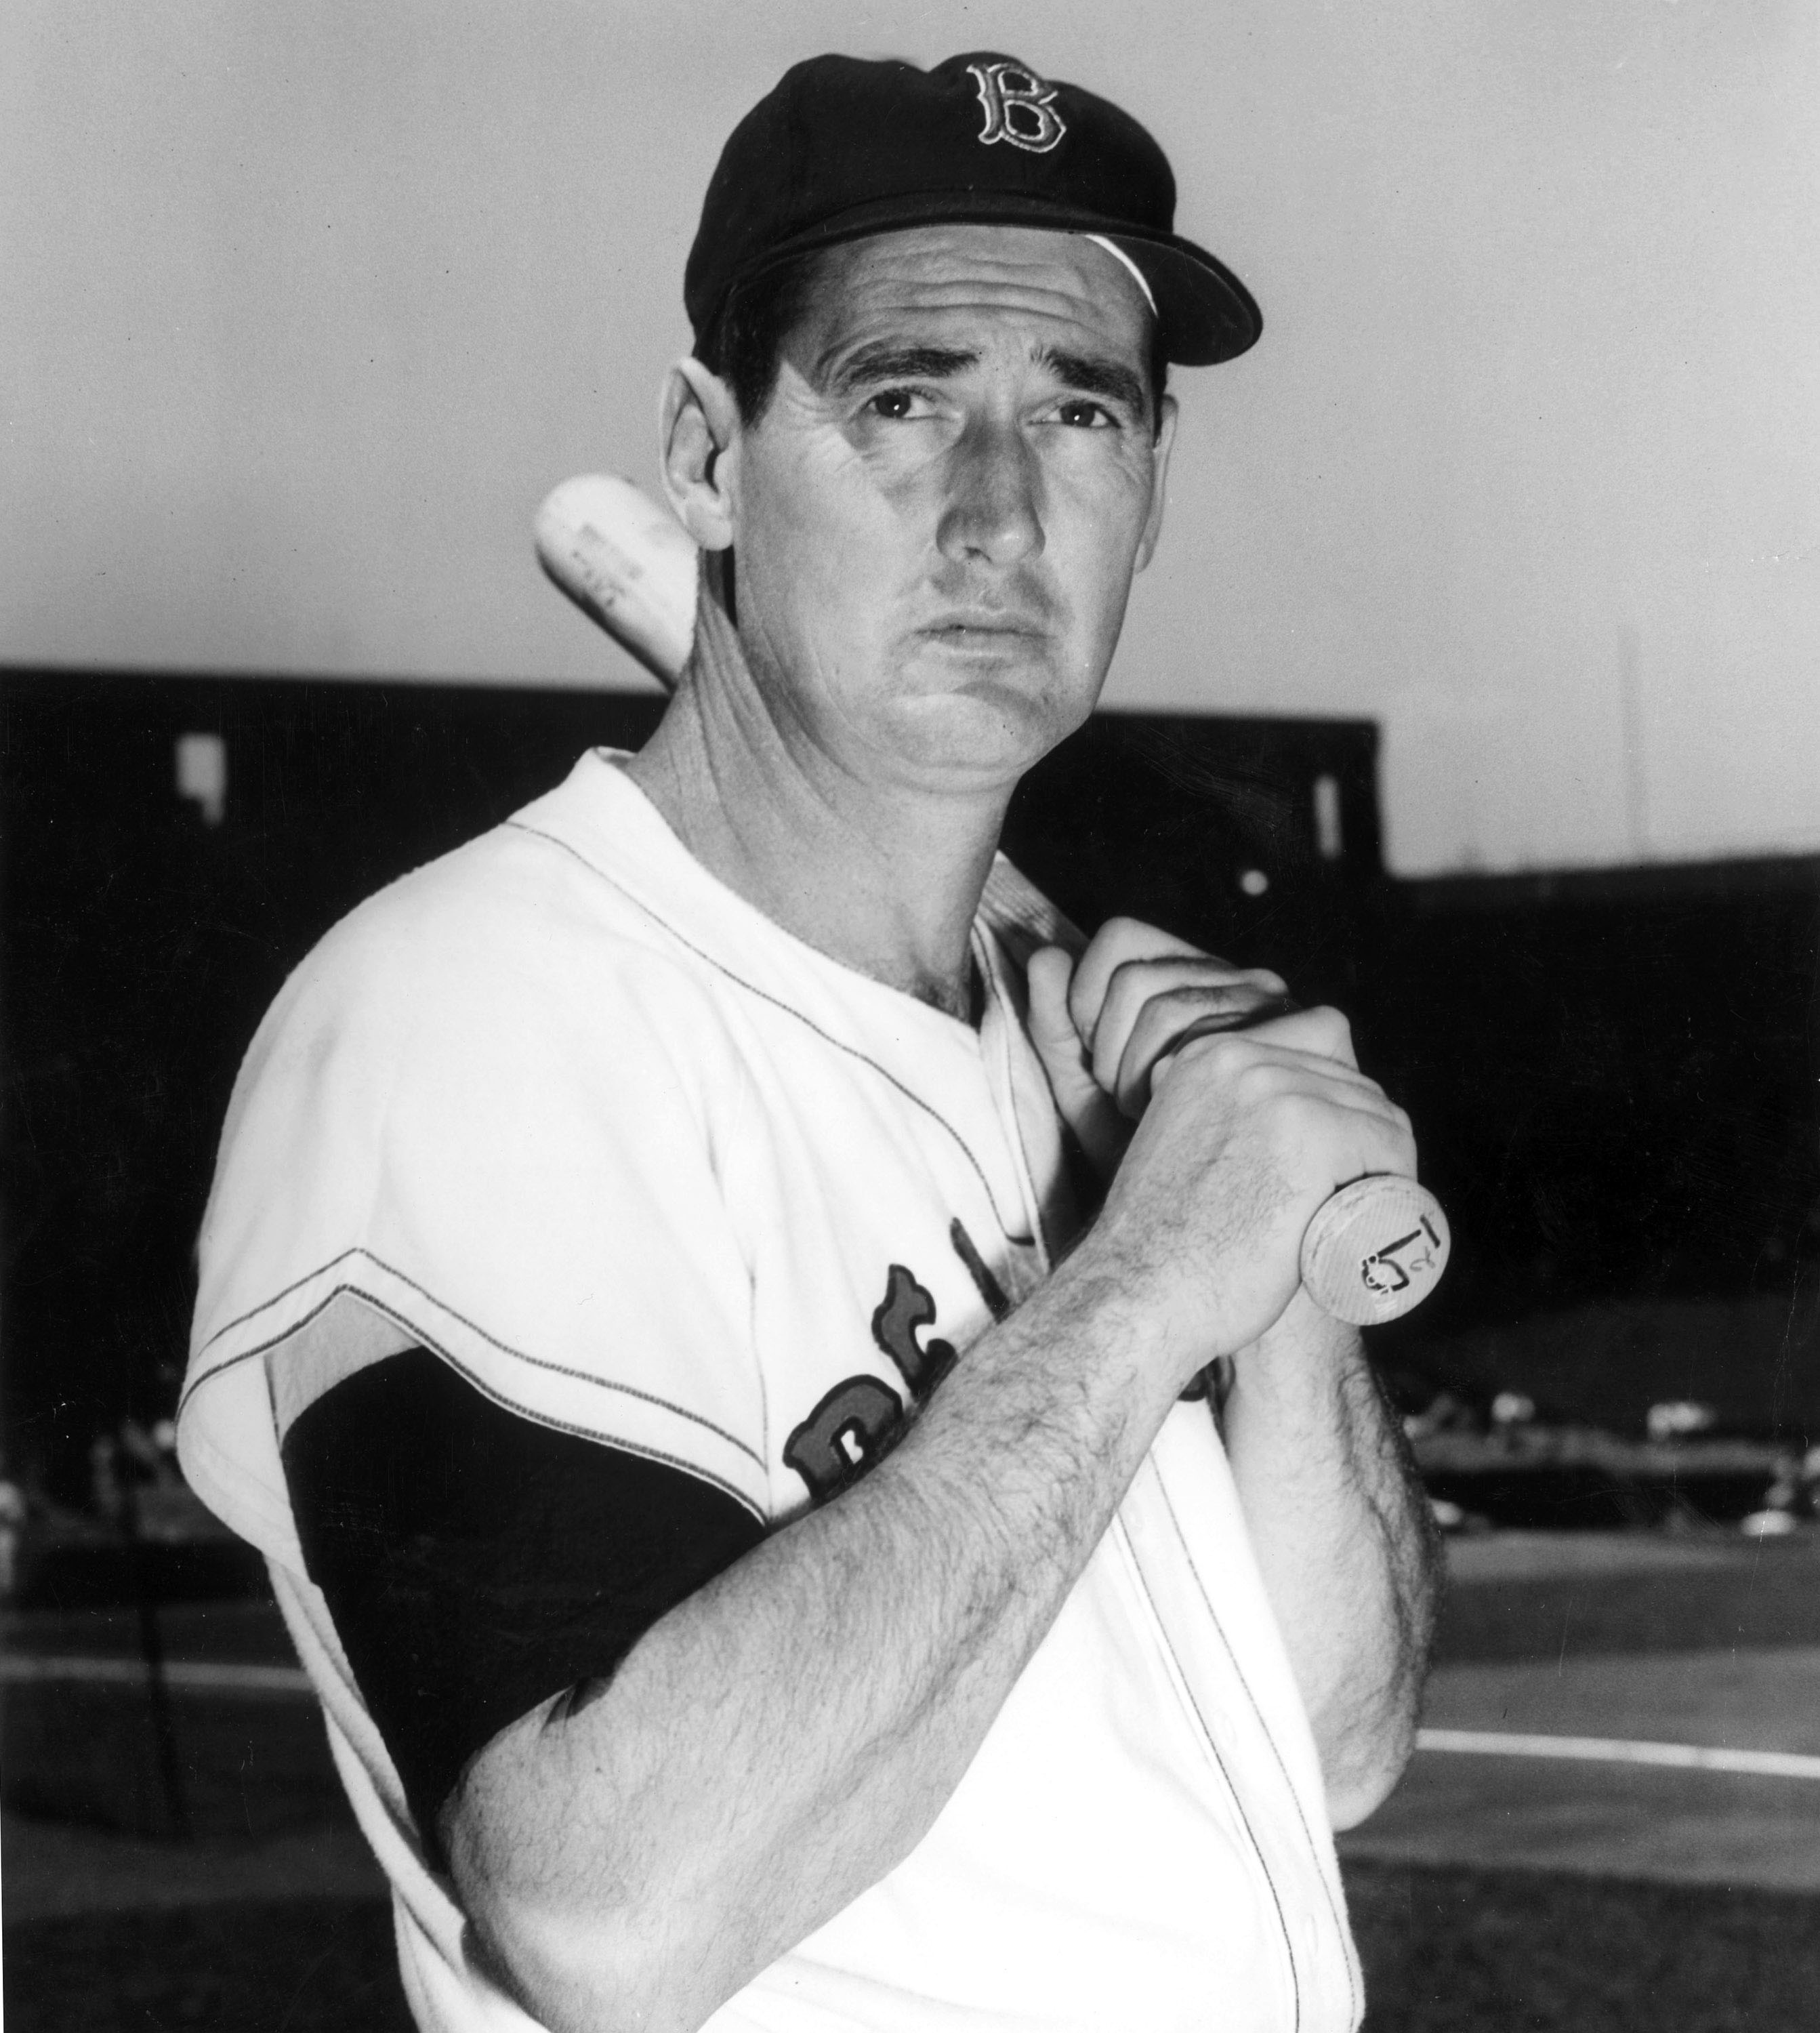 BOSTON - AUGUST 22, 1958:  (FILE PHOTO) Baseball legend Ted Williams (1918 - 2002) of the Boston Red Sox holds a baseball bat at Shriner's Day in Fenway Park August 22, 1958 in Boston, Massachusetts. The 83-year-old Williams, who was the last major league